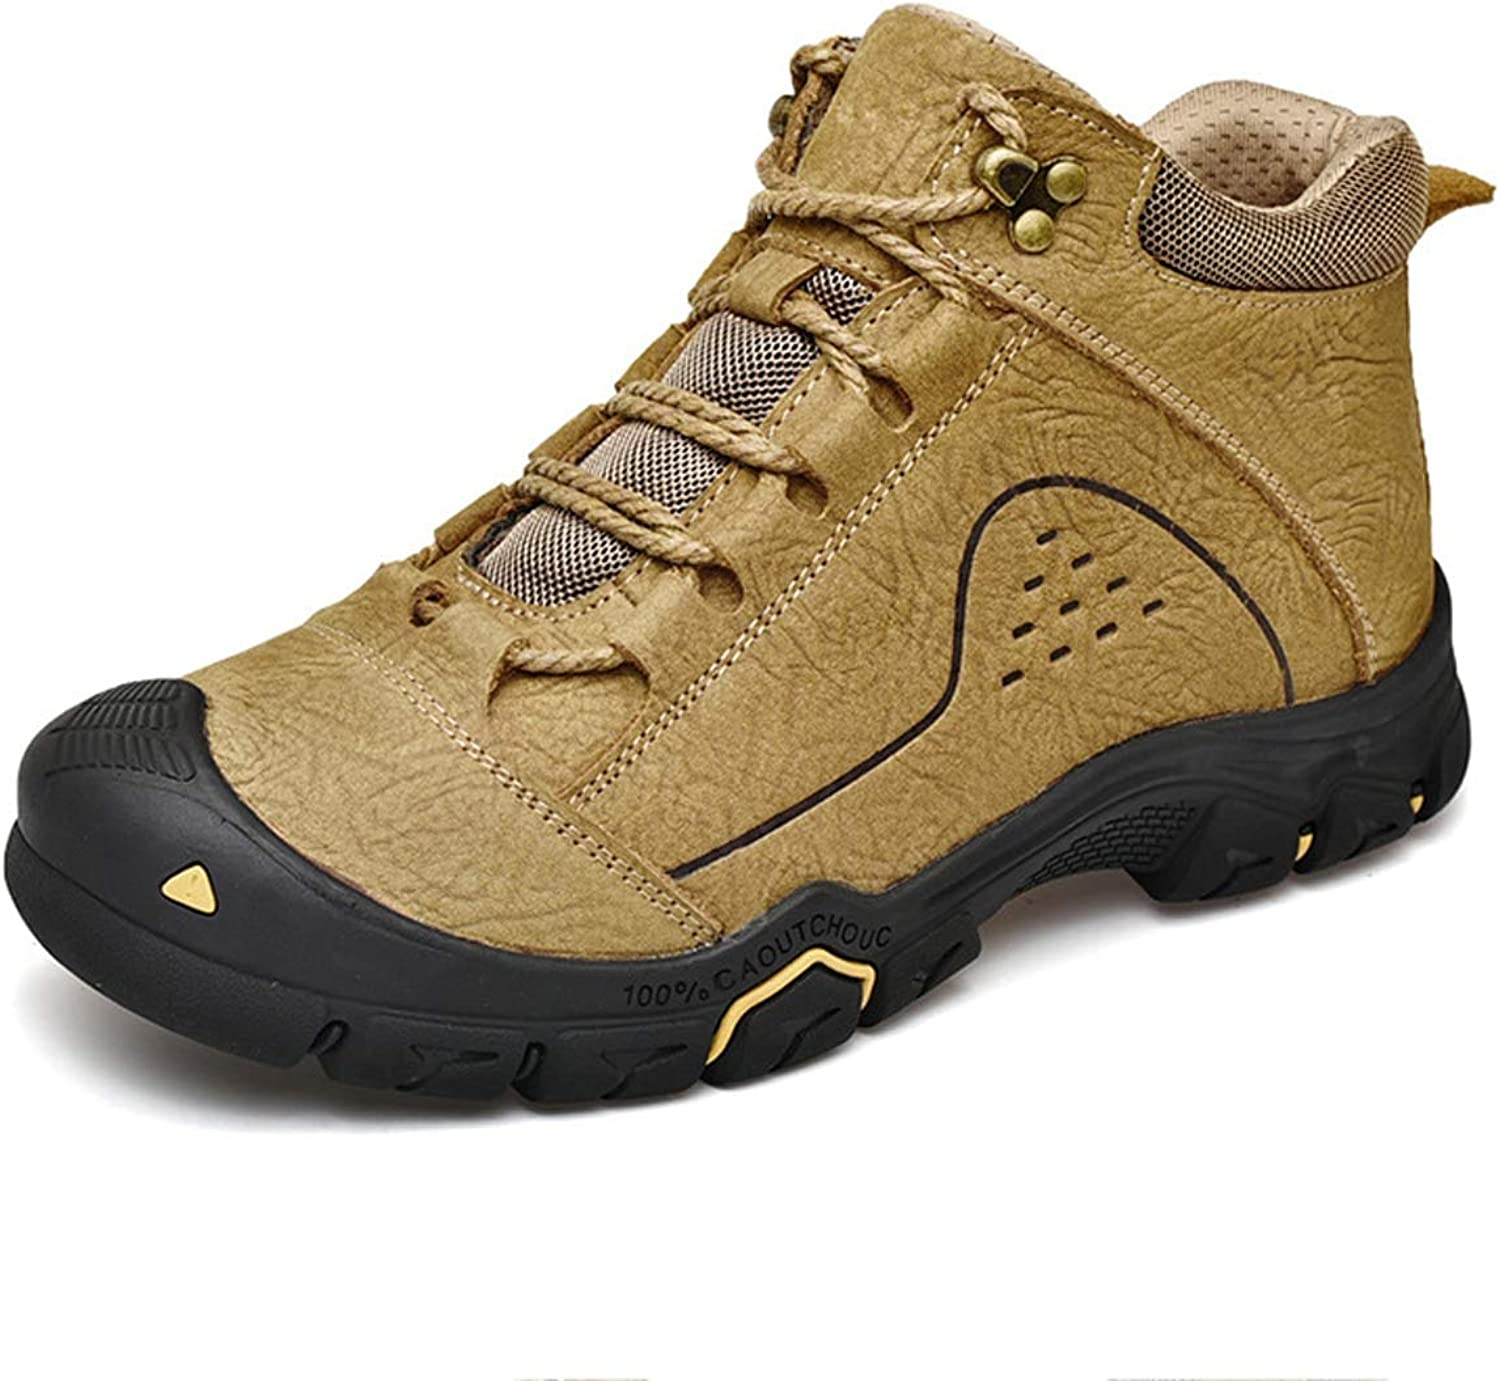 Adong Mens Hiking shoes Jungle Trekking shoes Waterproof shoes Outdoor shoes Non Slip Breathable Outdoor shoes Extra Cushioning Features Rubber Sole All Season,A,40EU